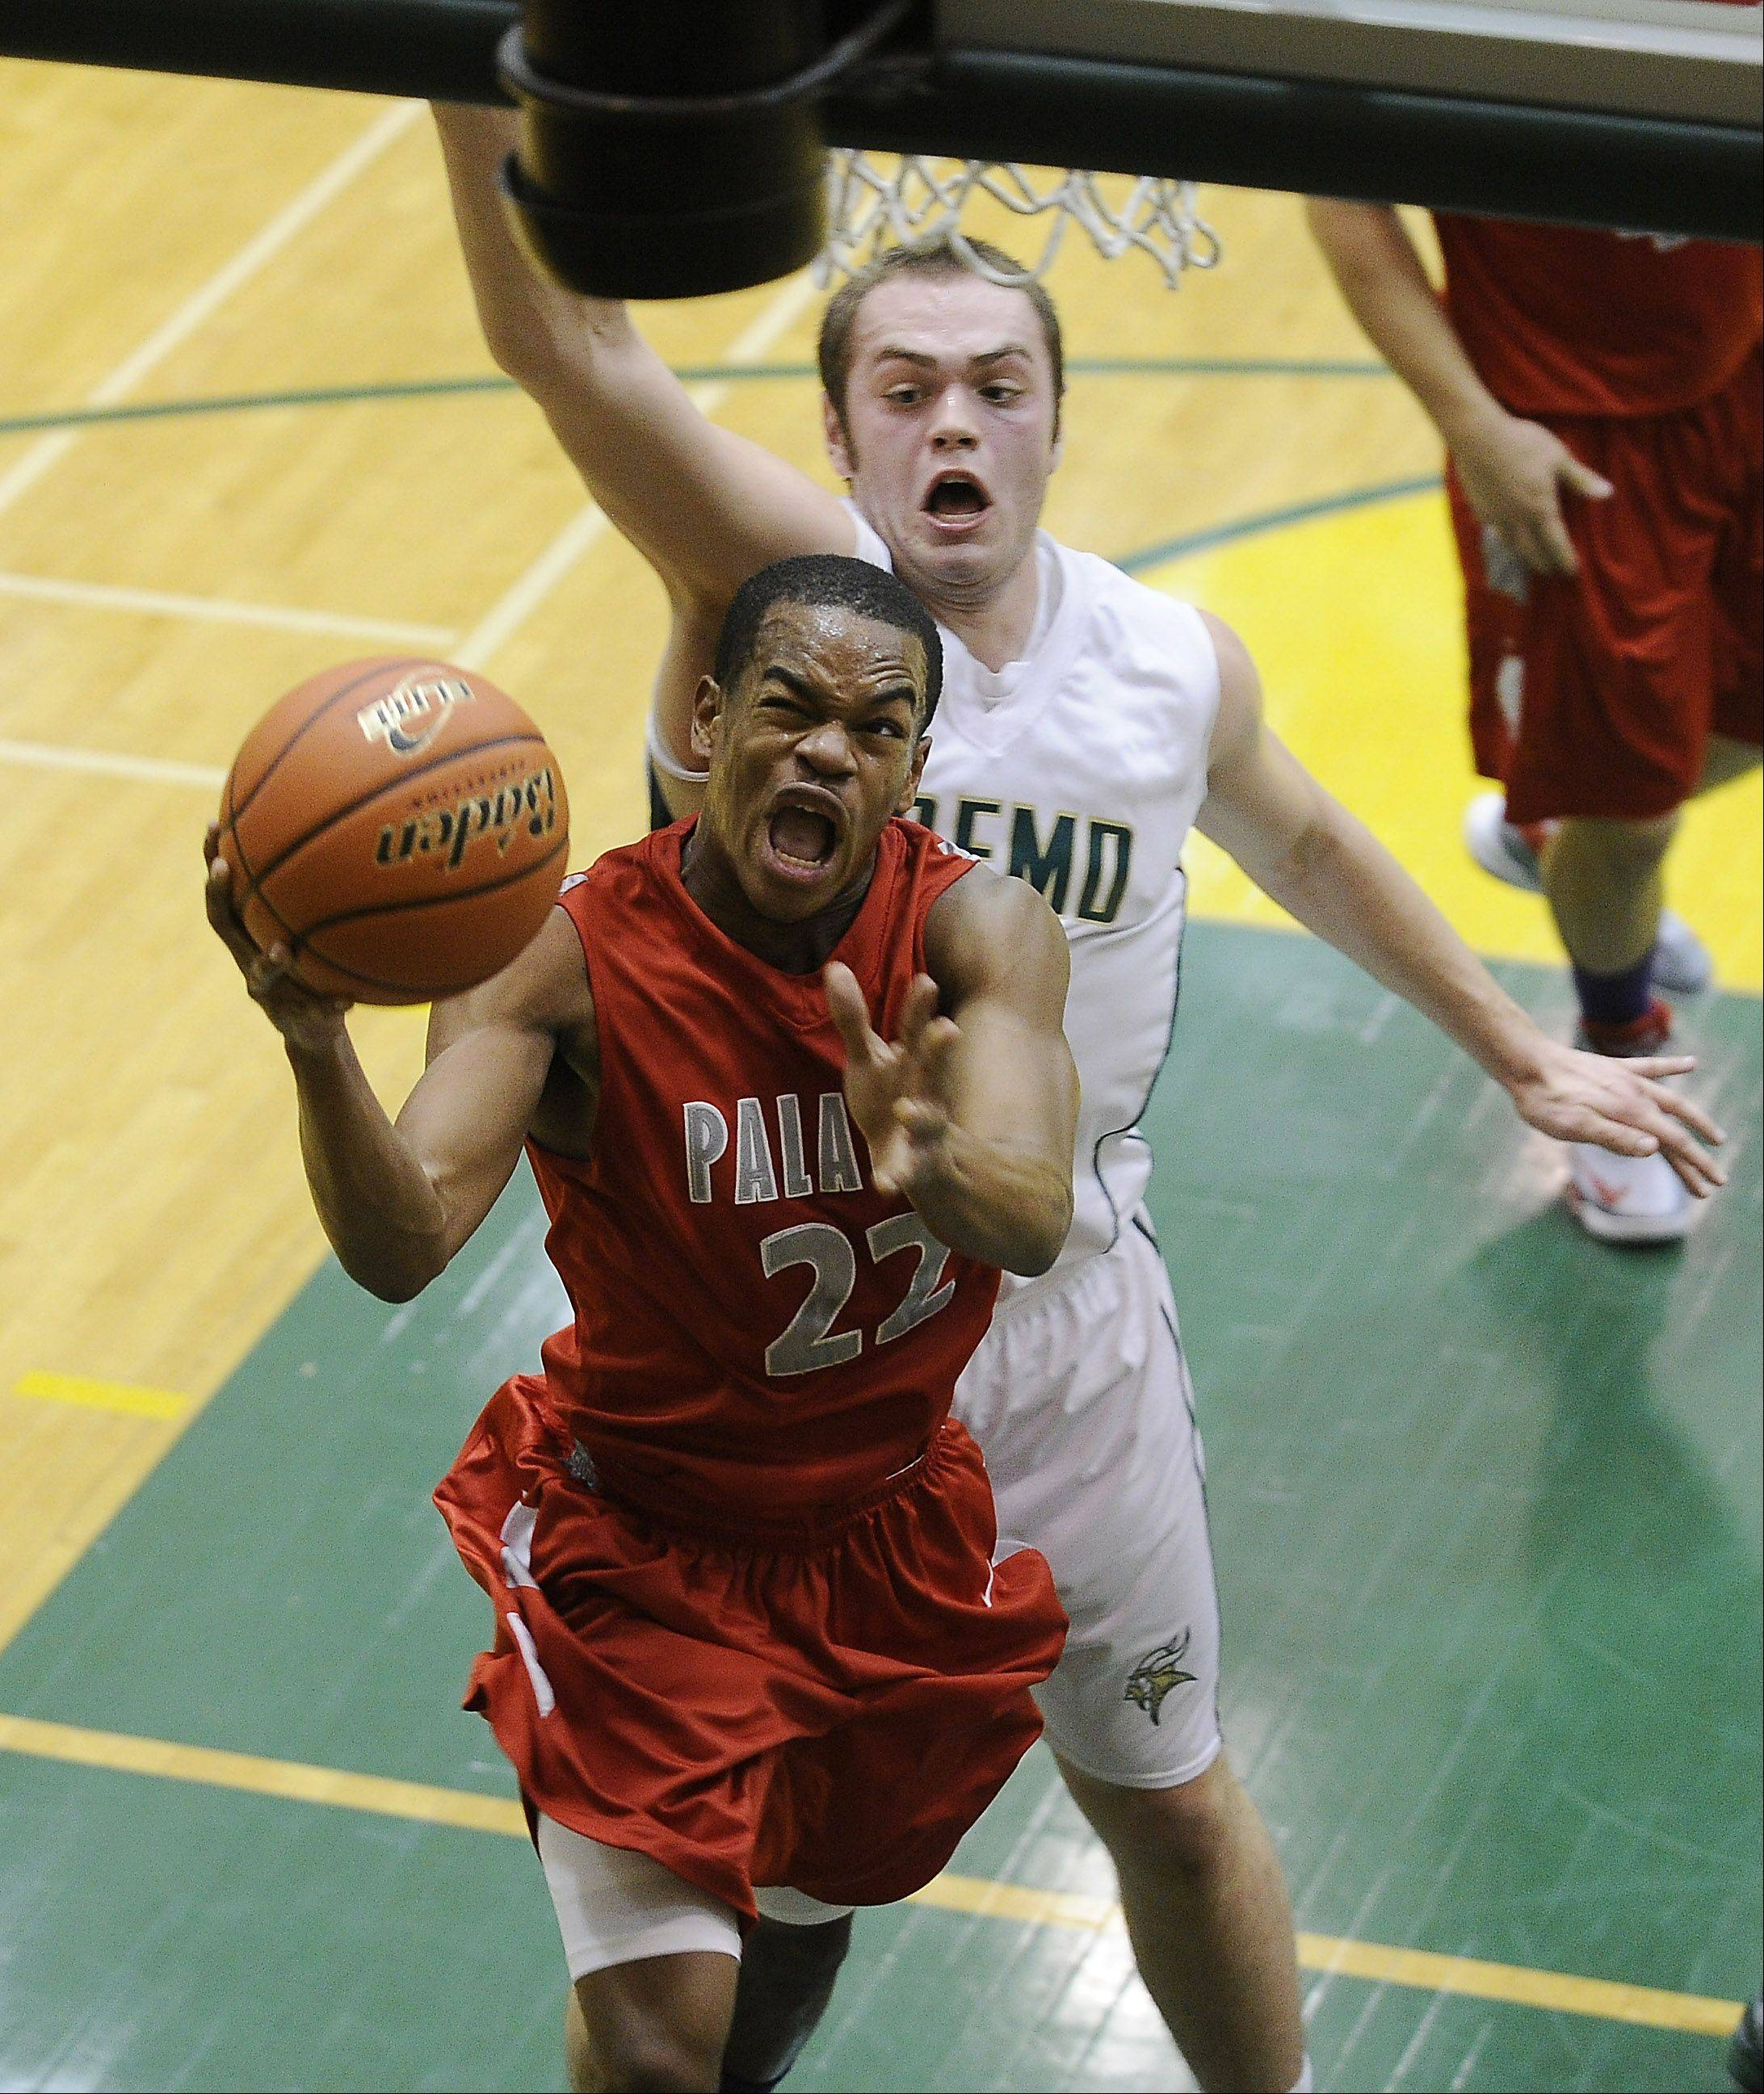 Palatine's Jordan Jarrett drives for the basket under pressure against Fremd.